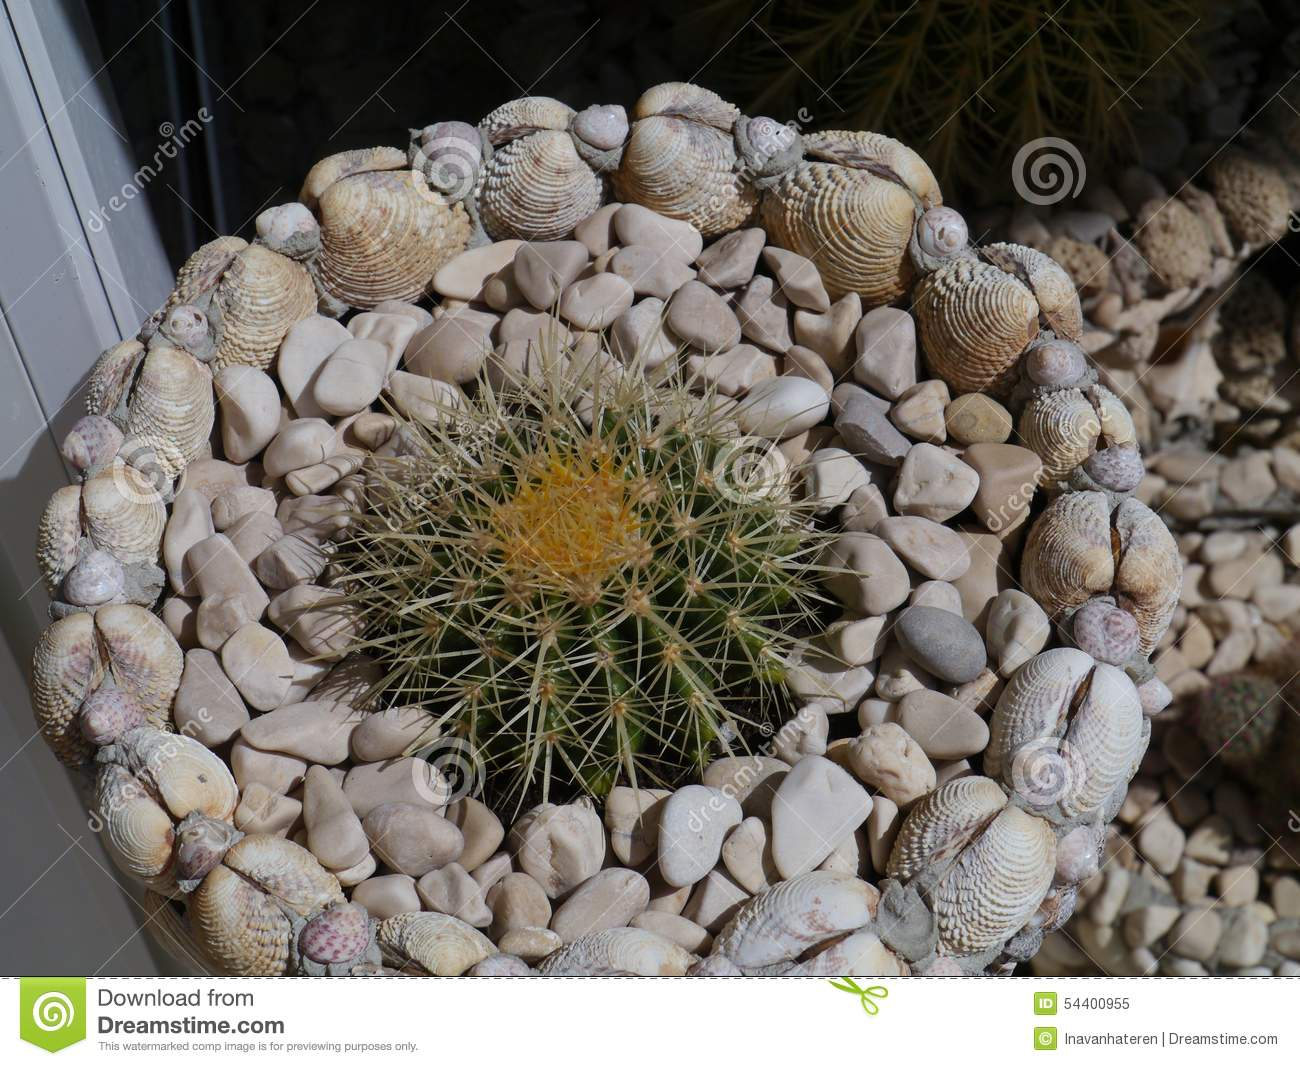 A Garden Of Shells With Cactus Plants Stock Image Image Of